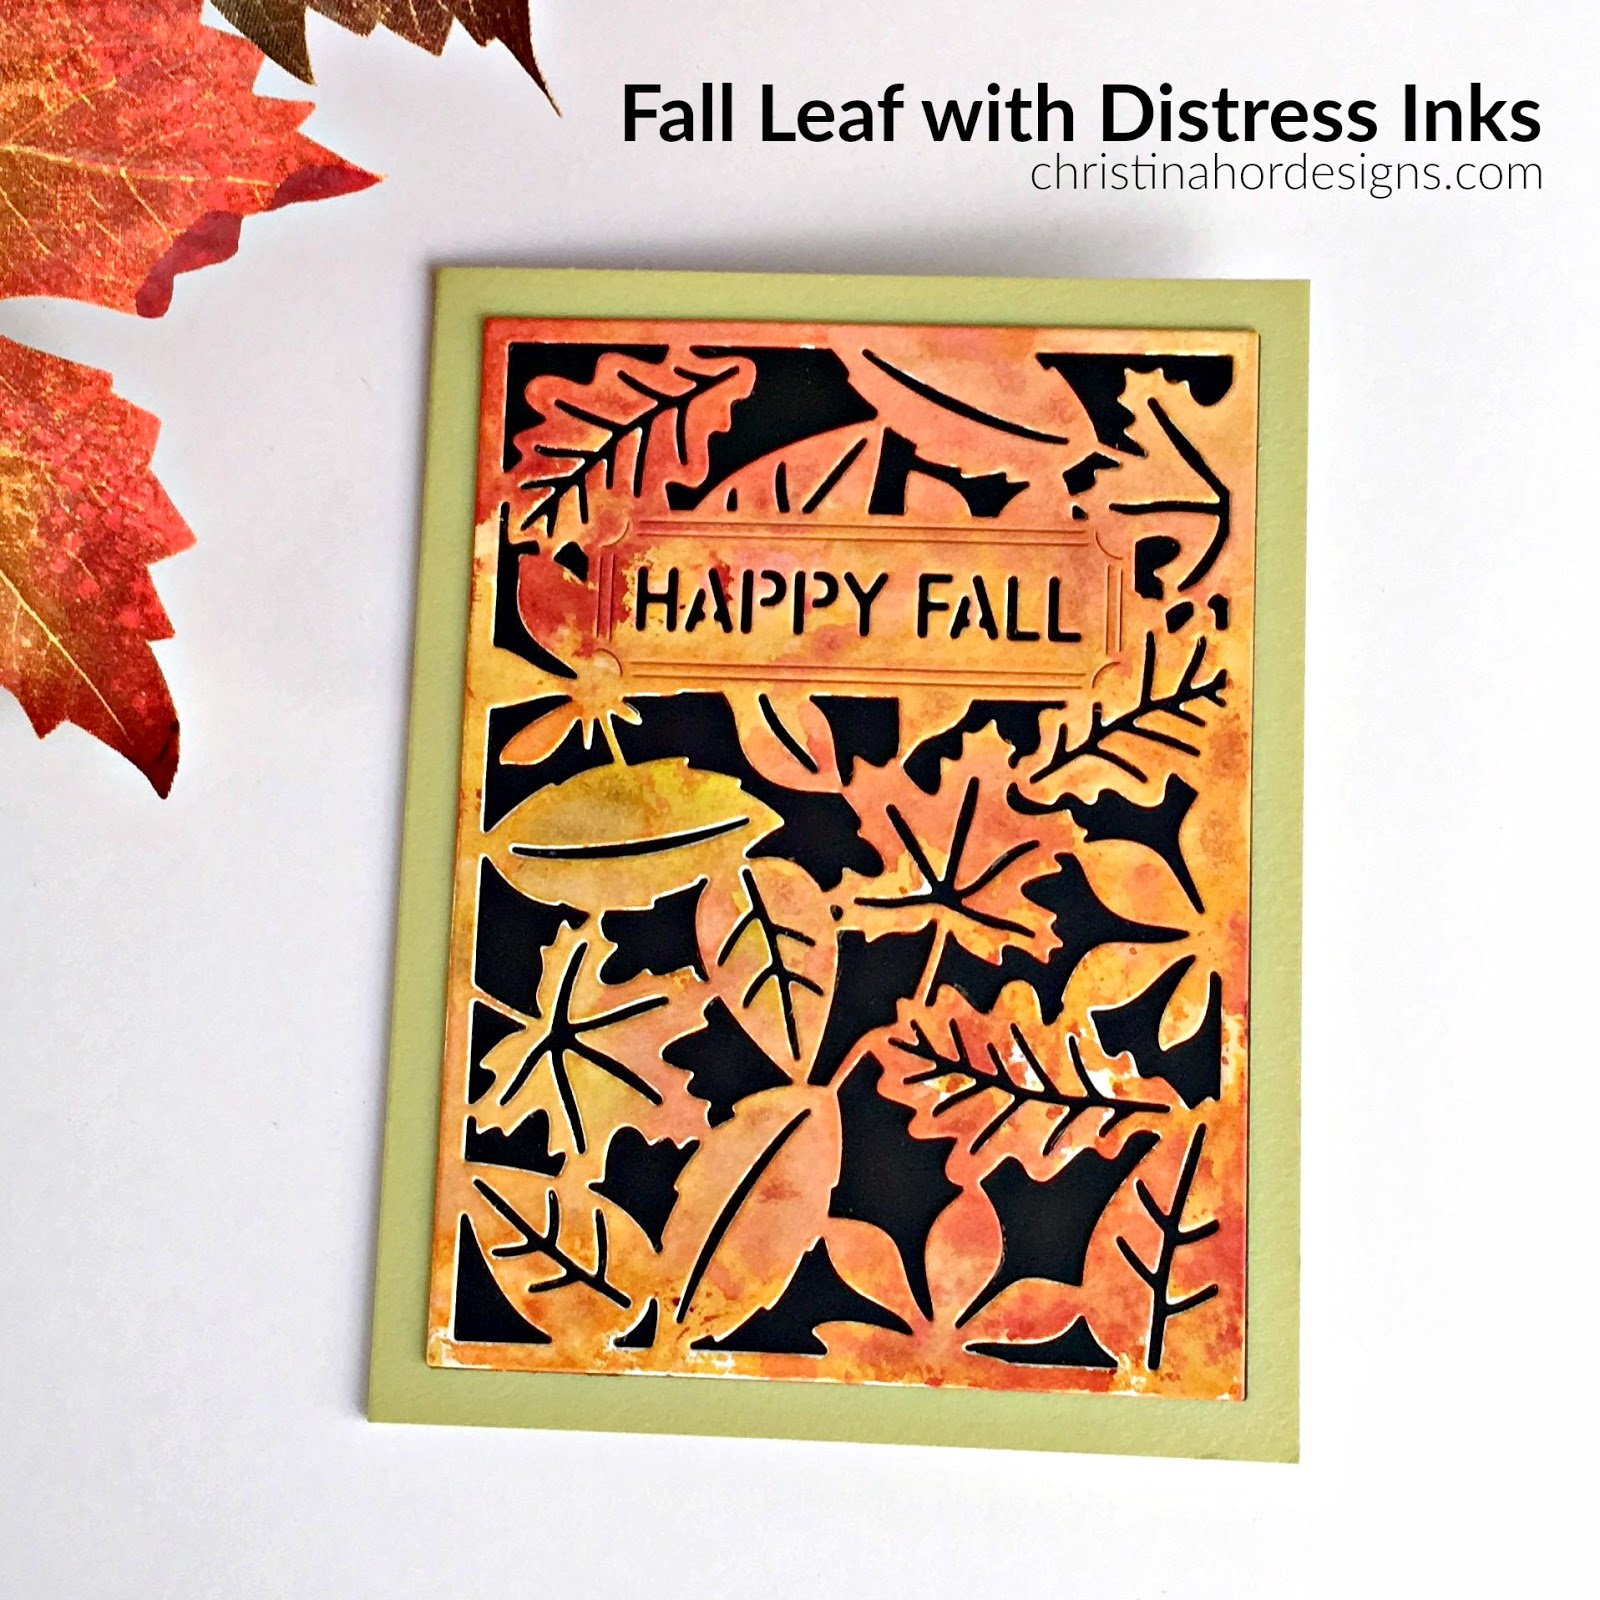 Fall Leaf with Distress Inks